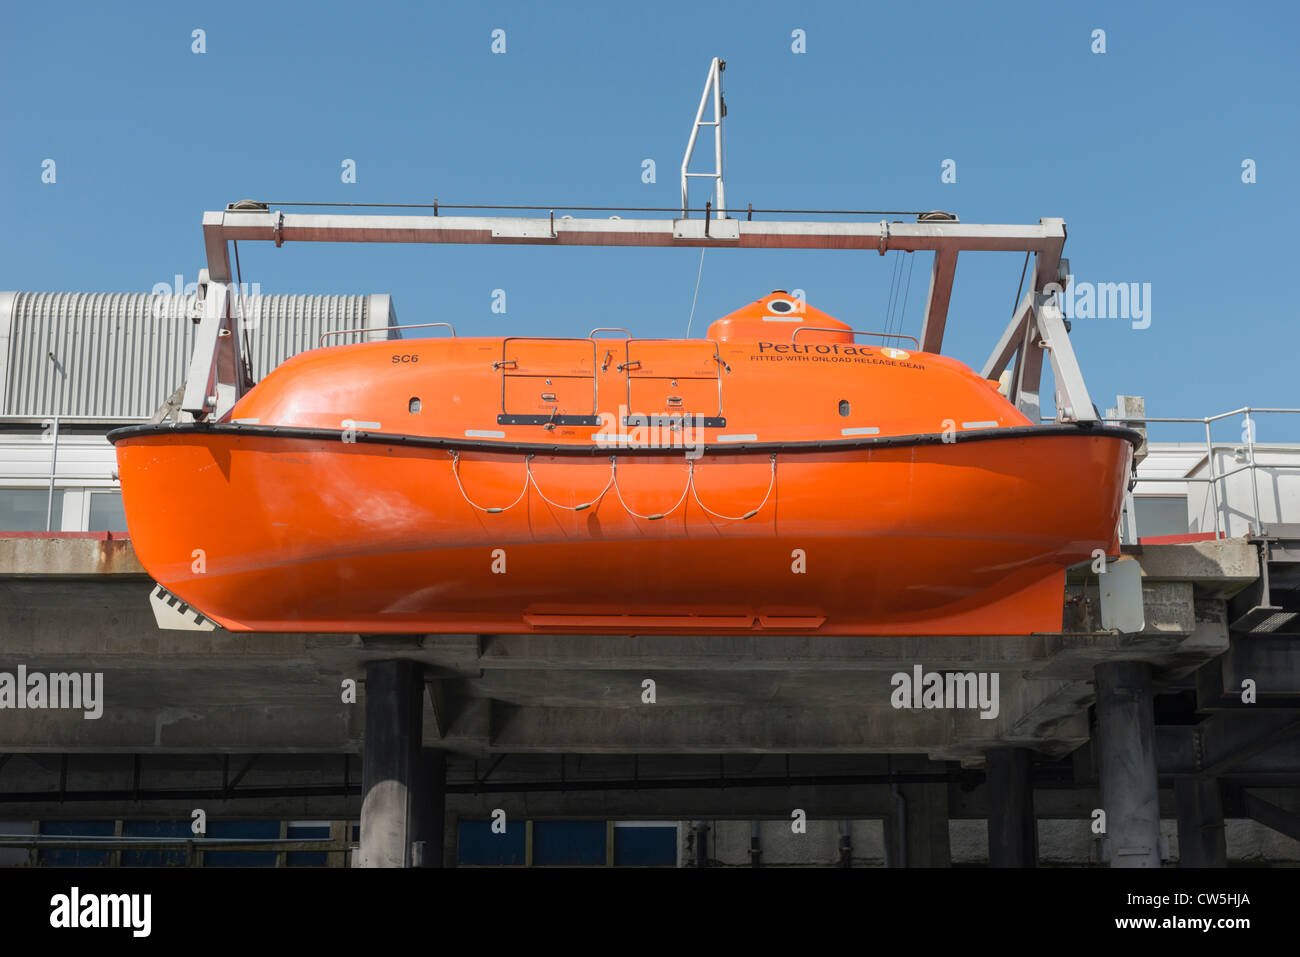 A totally enclosed lifeboat - Stock Image